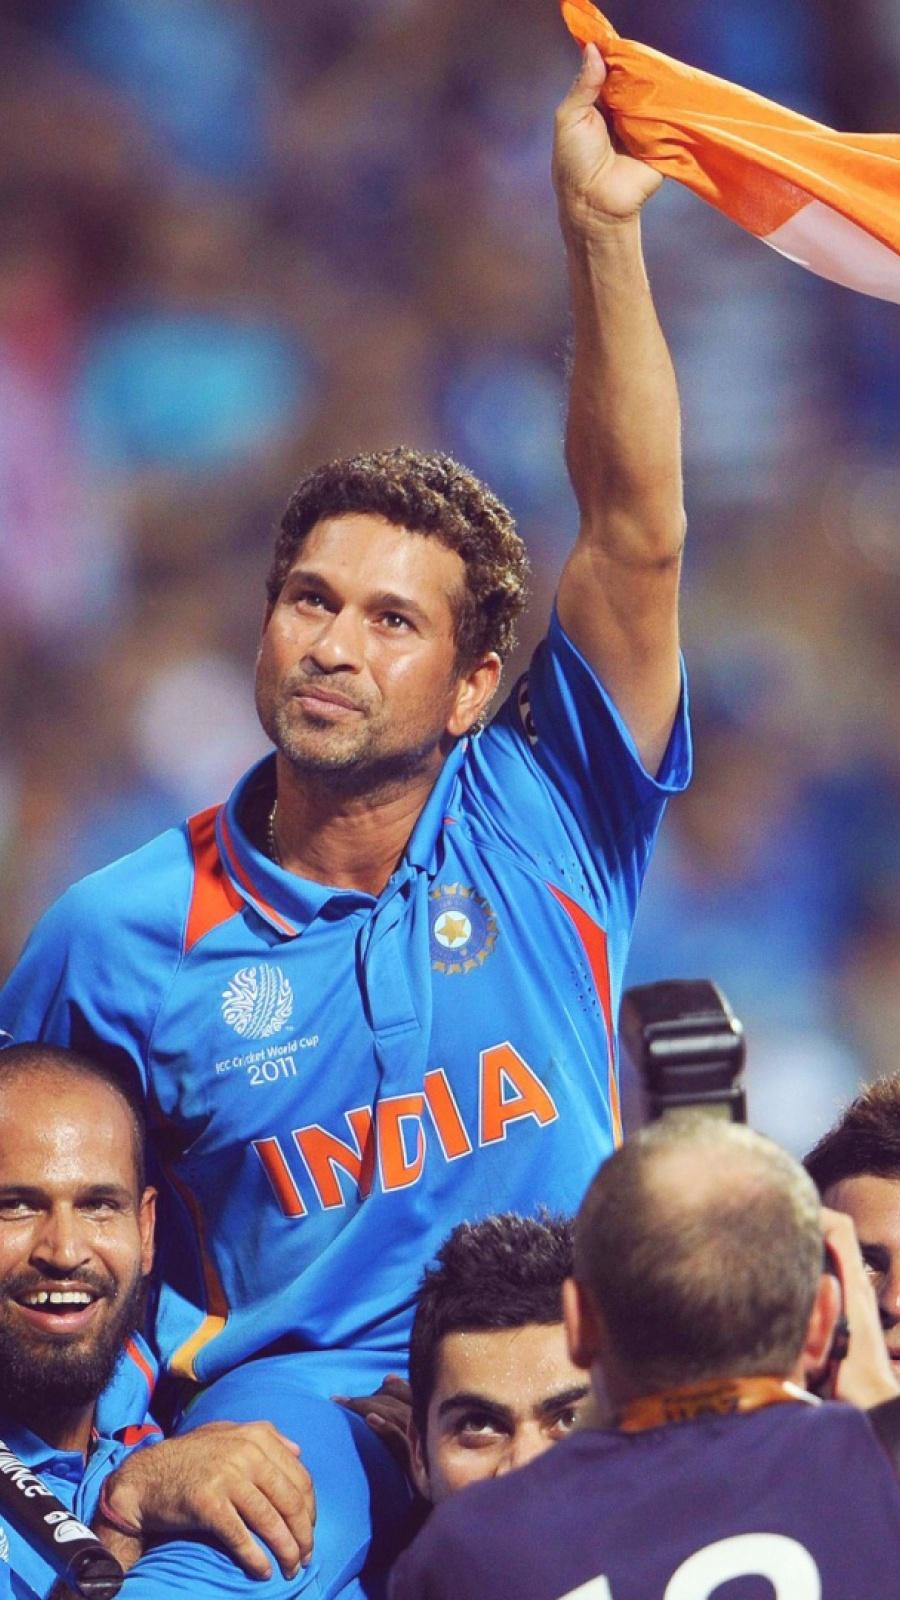 sachin tendulkar god of cricket mobile wallpaper - mobiles wall